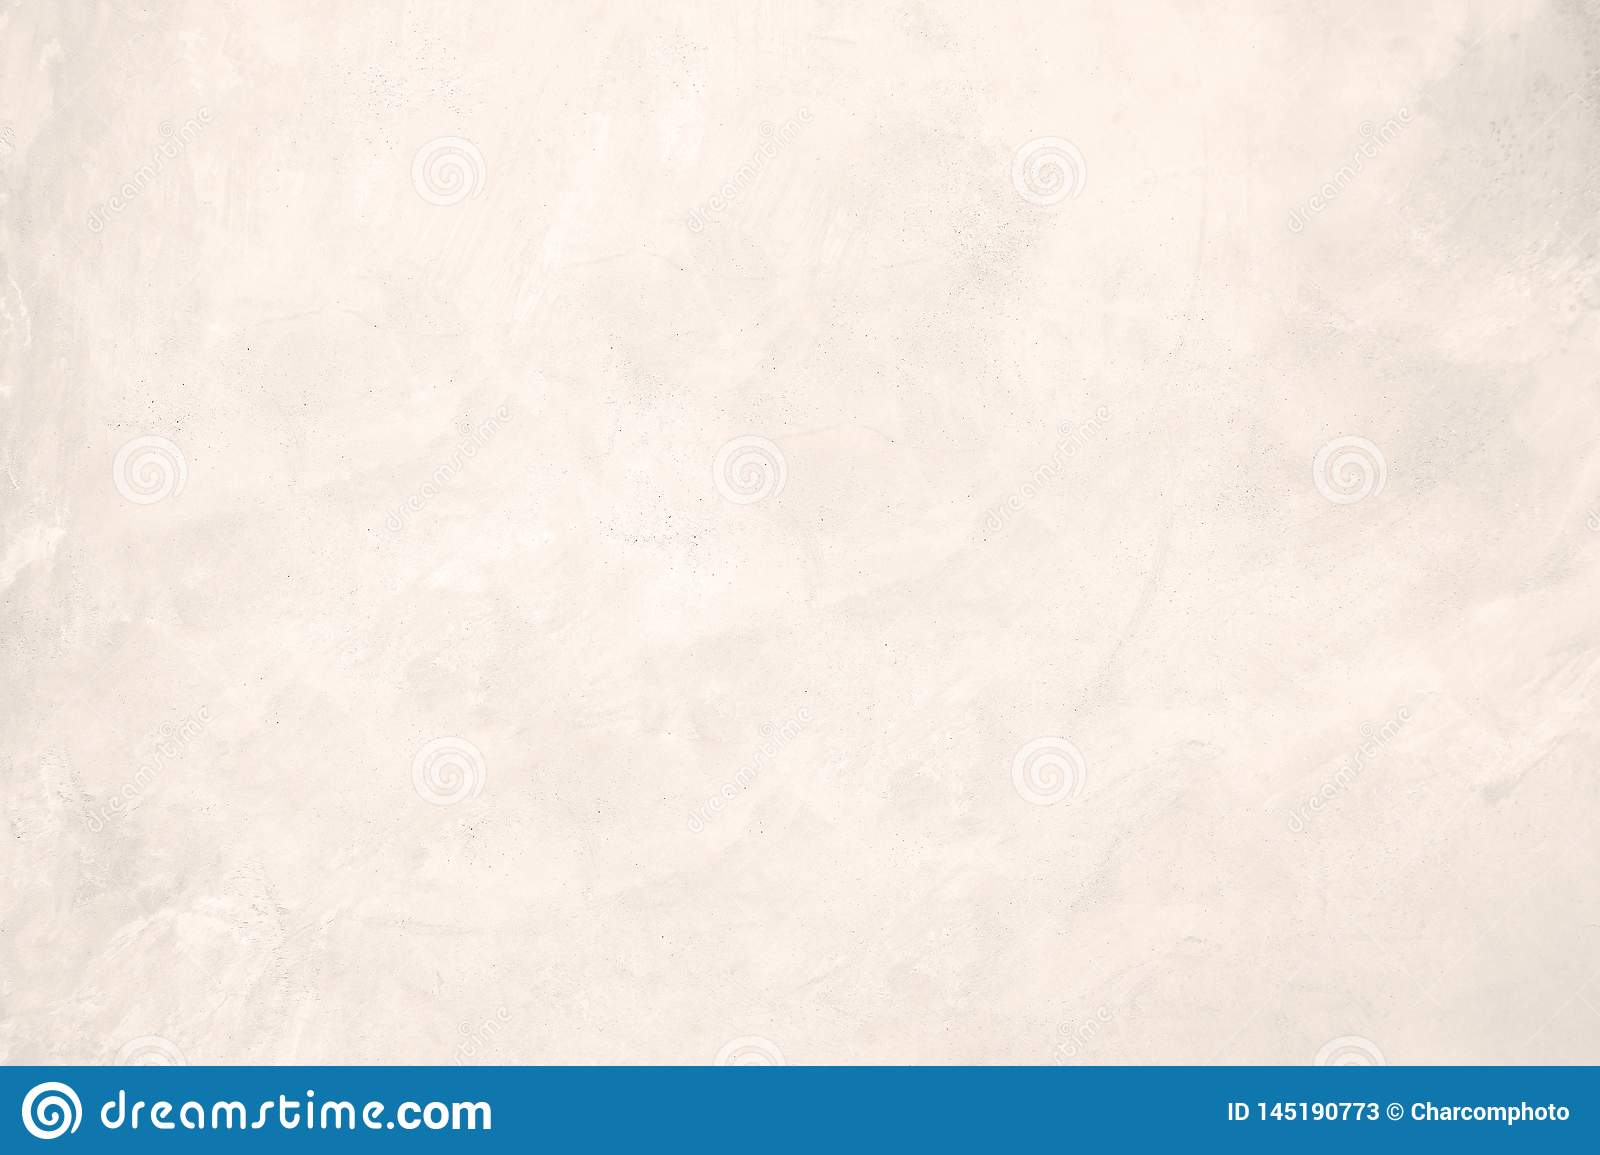 White pastel rough crack cement texture stone concrete,rock plastered stucco wall; painted flat fade background gray solid floor